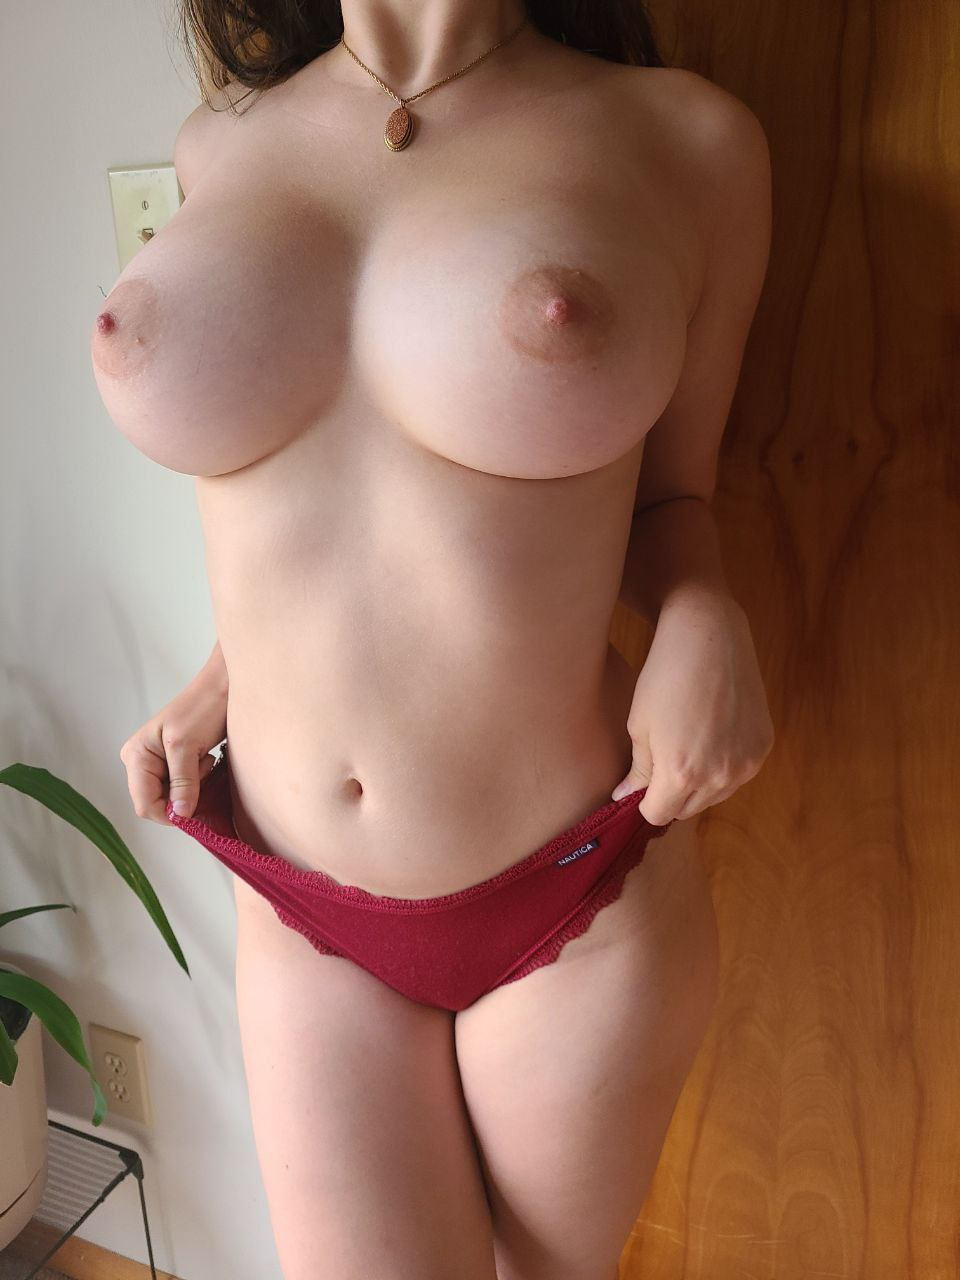 I'm small but my tits aren't (18f)